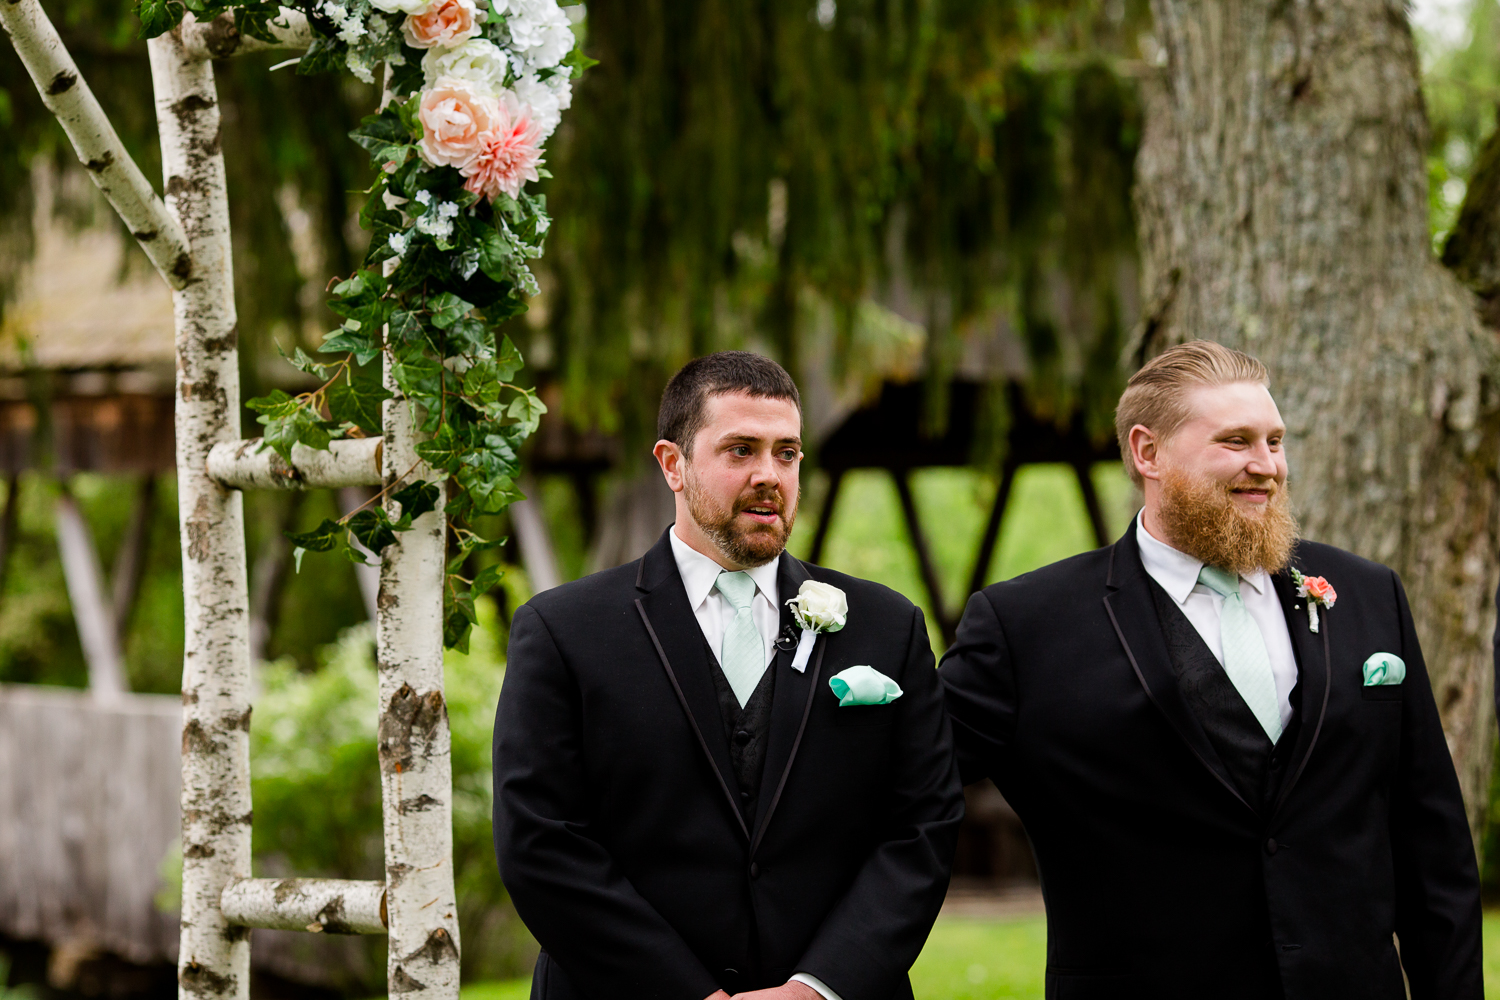 Groom waits for bride at the alter